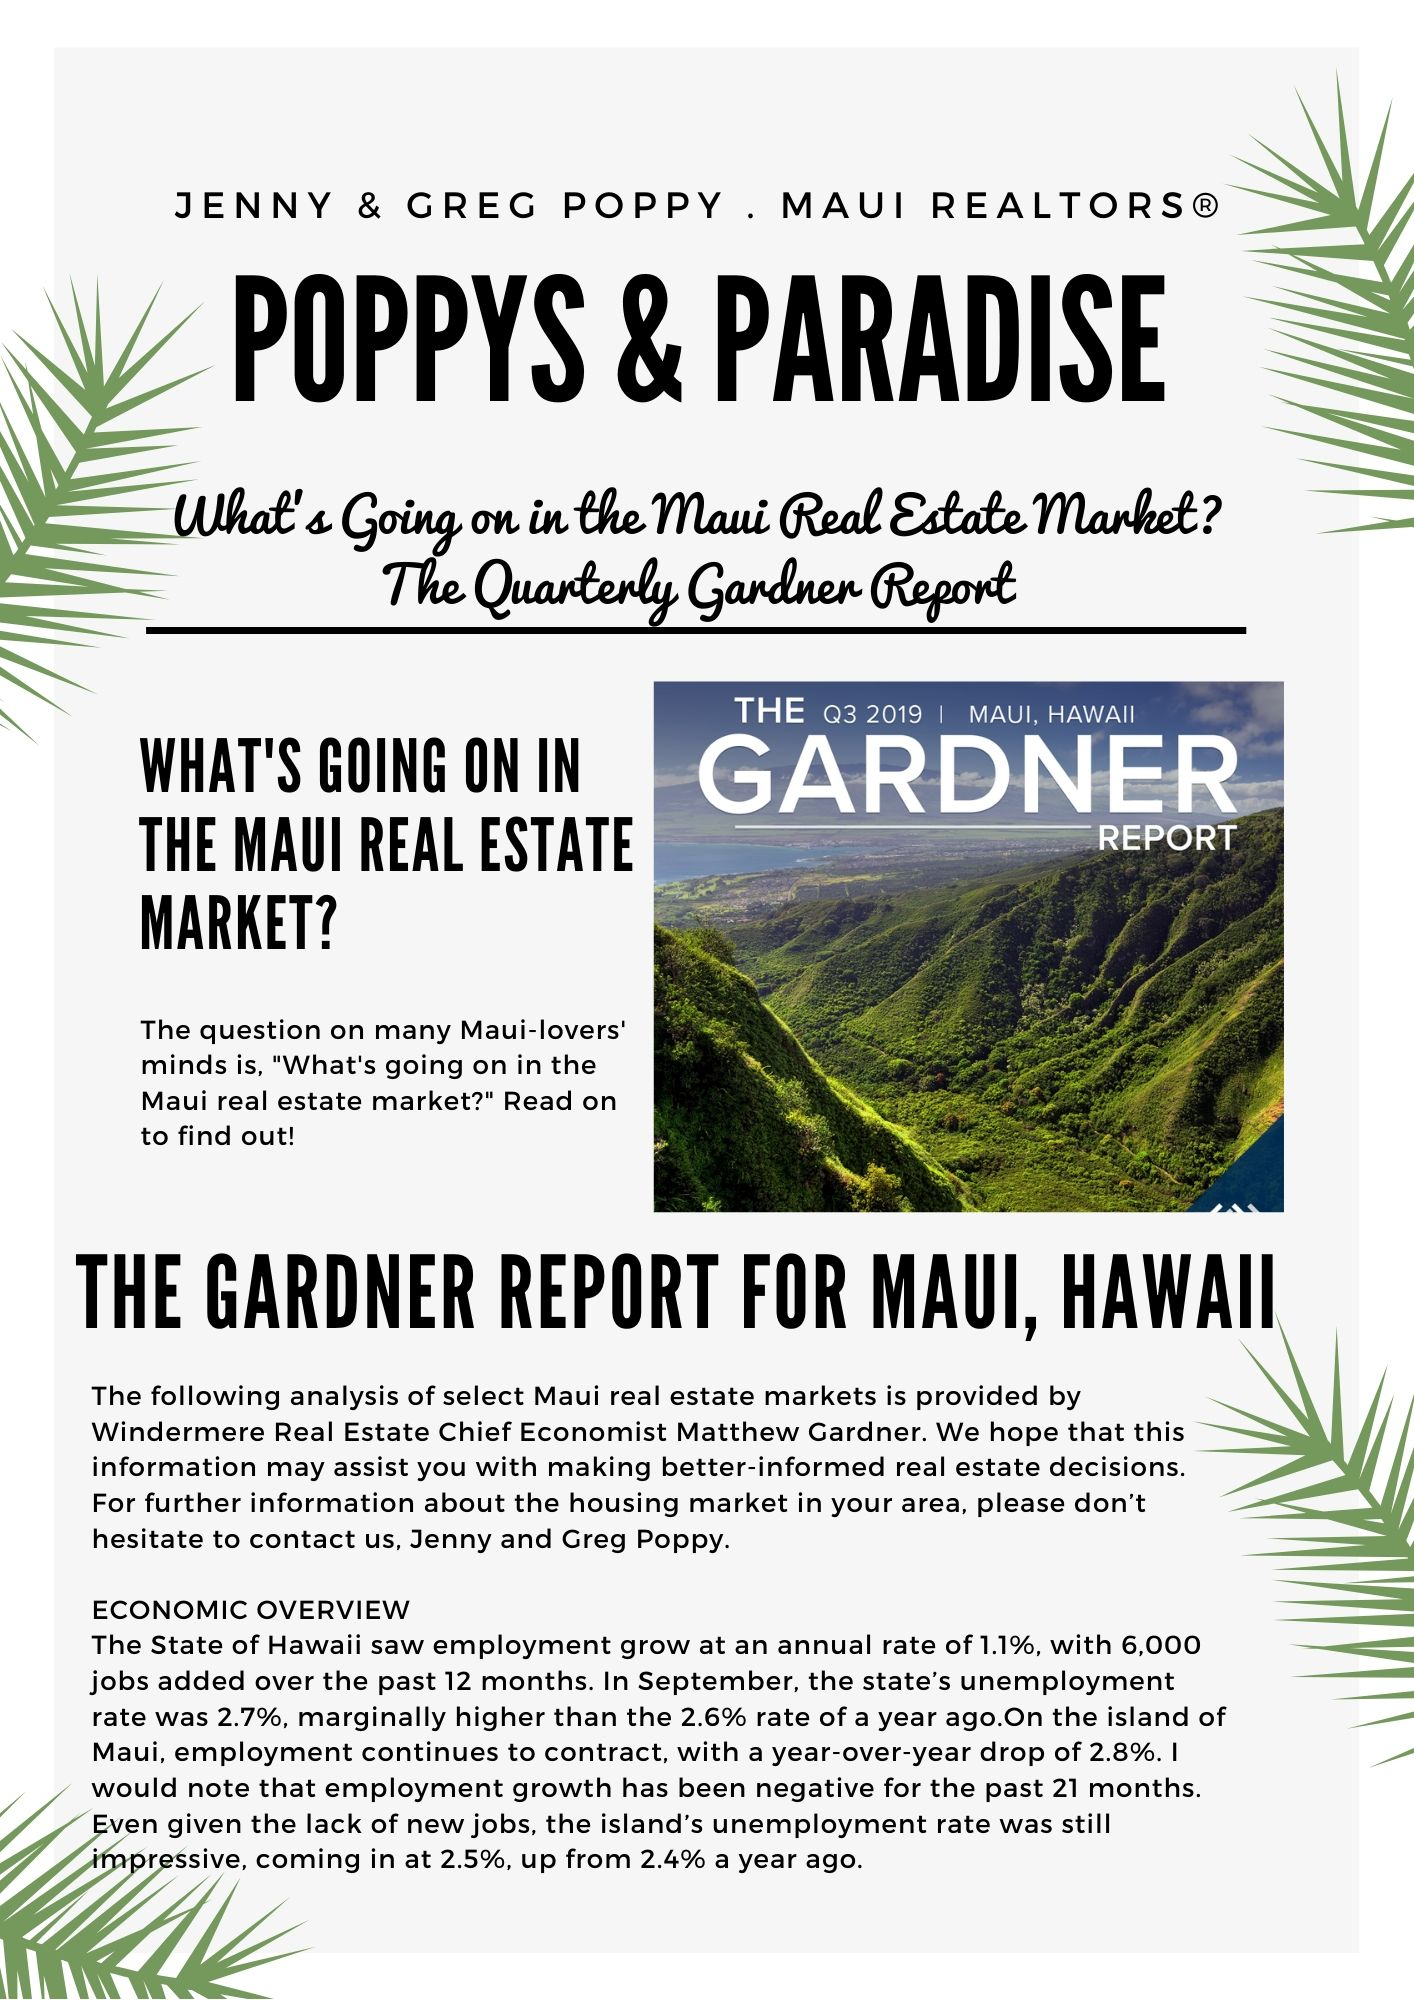 What's Going on in the Maui Real Estate Market? The Quarterly Gardner Report